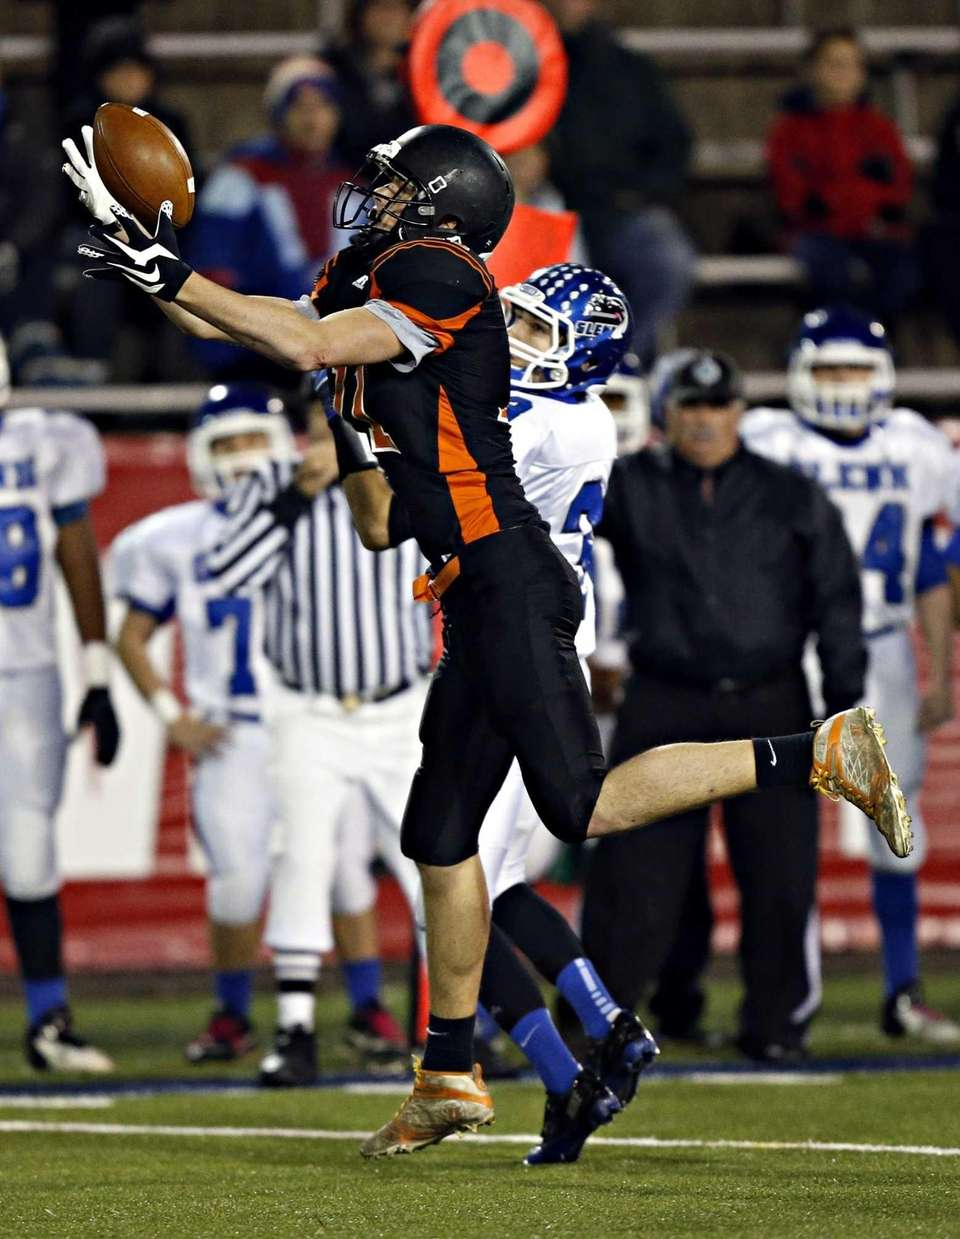 Babylon's Ray Wardell intercepts a pass in front